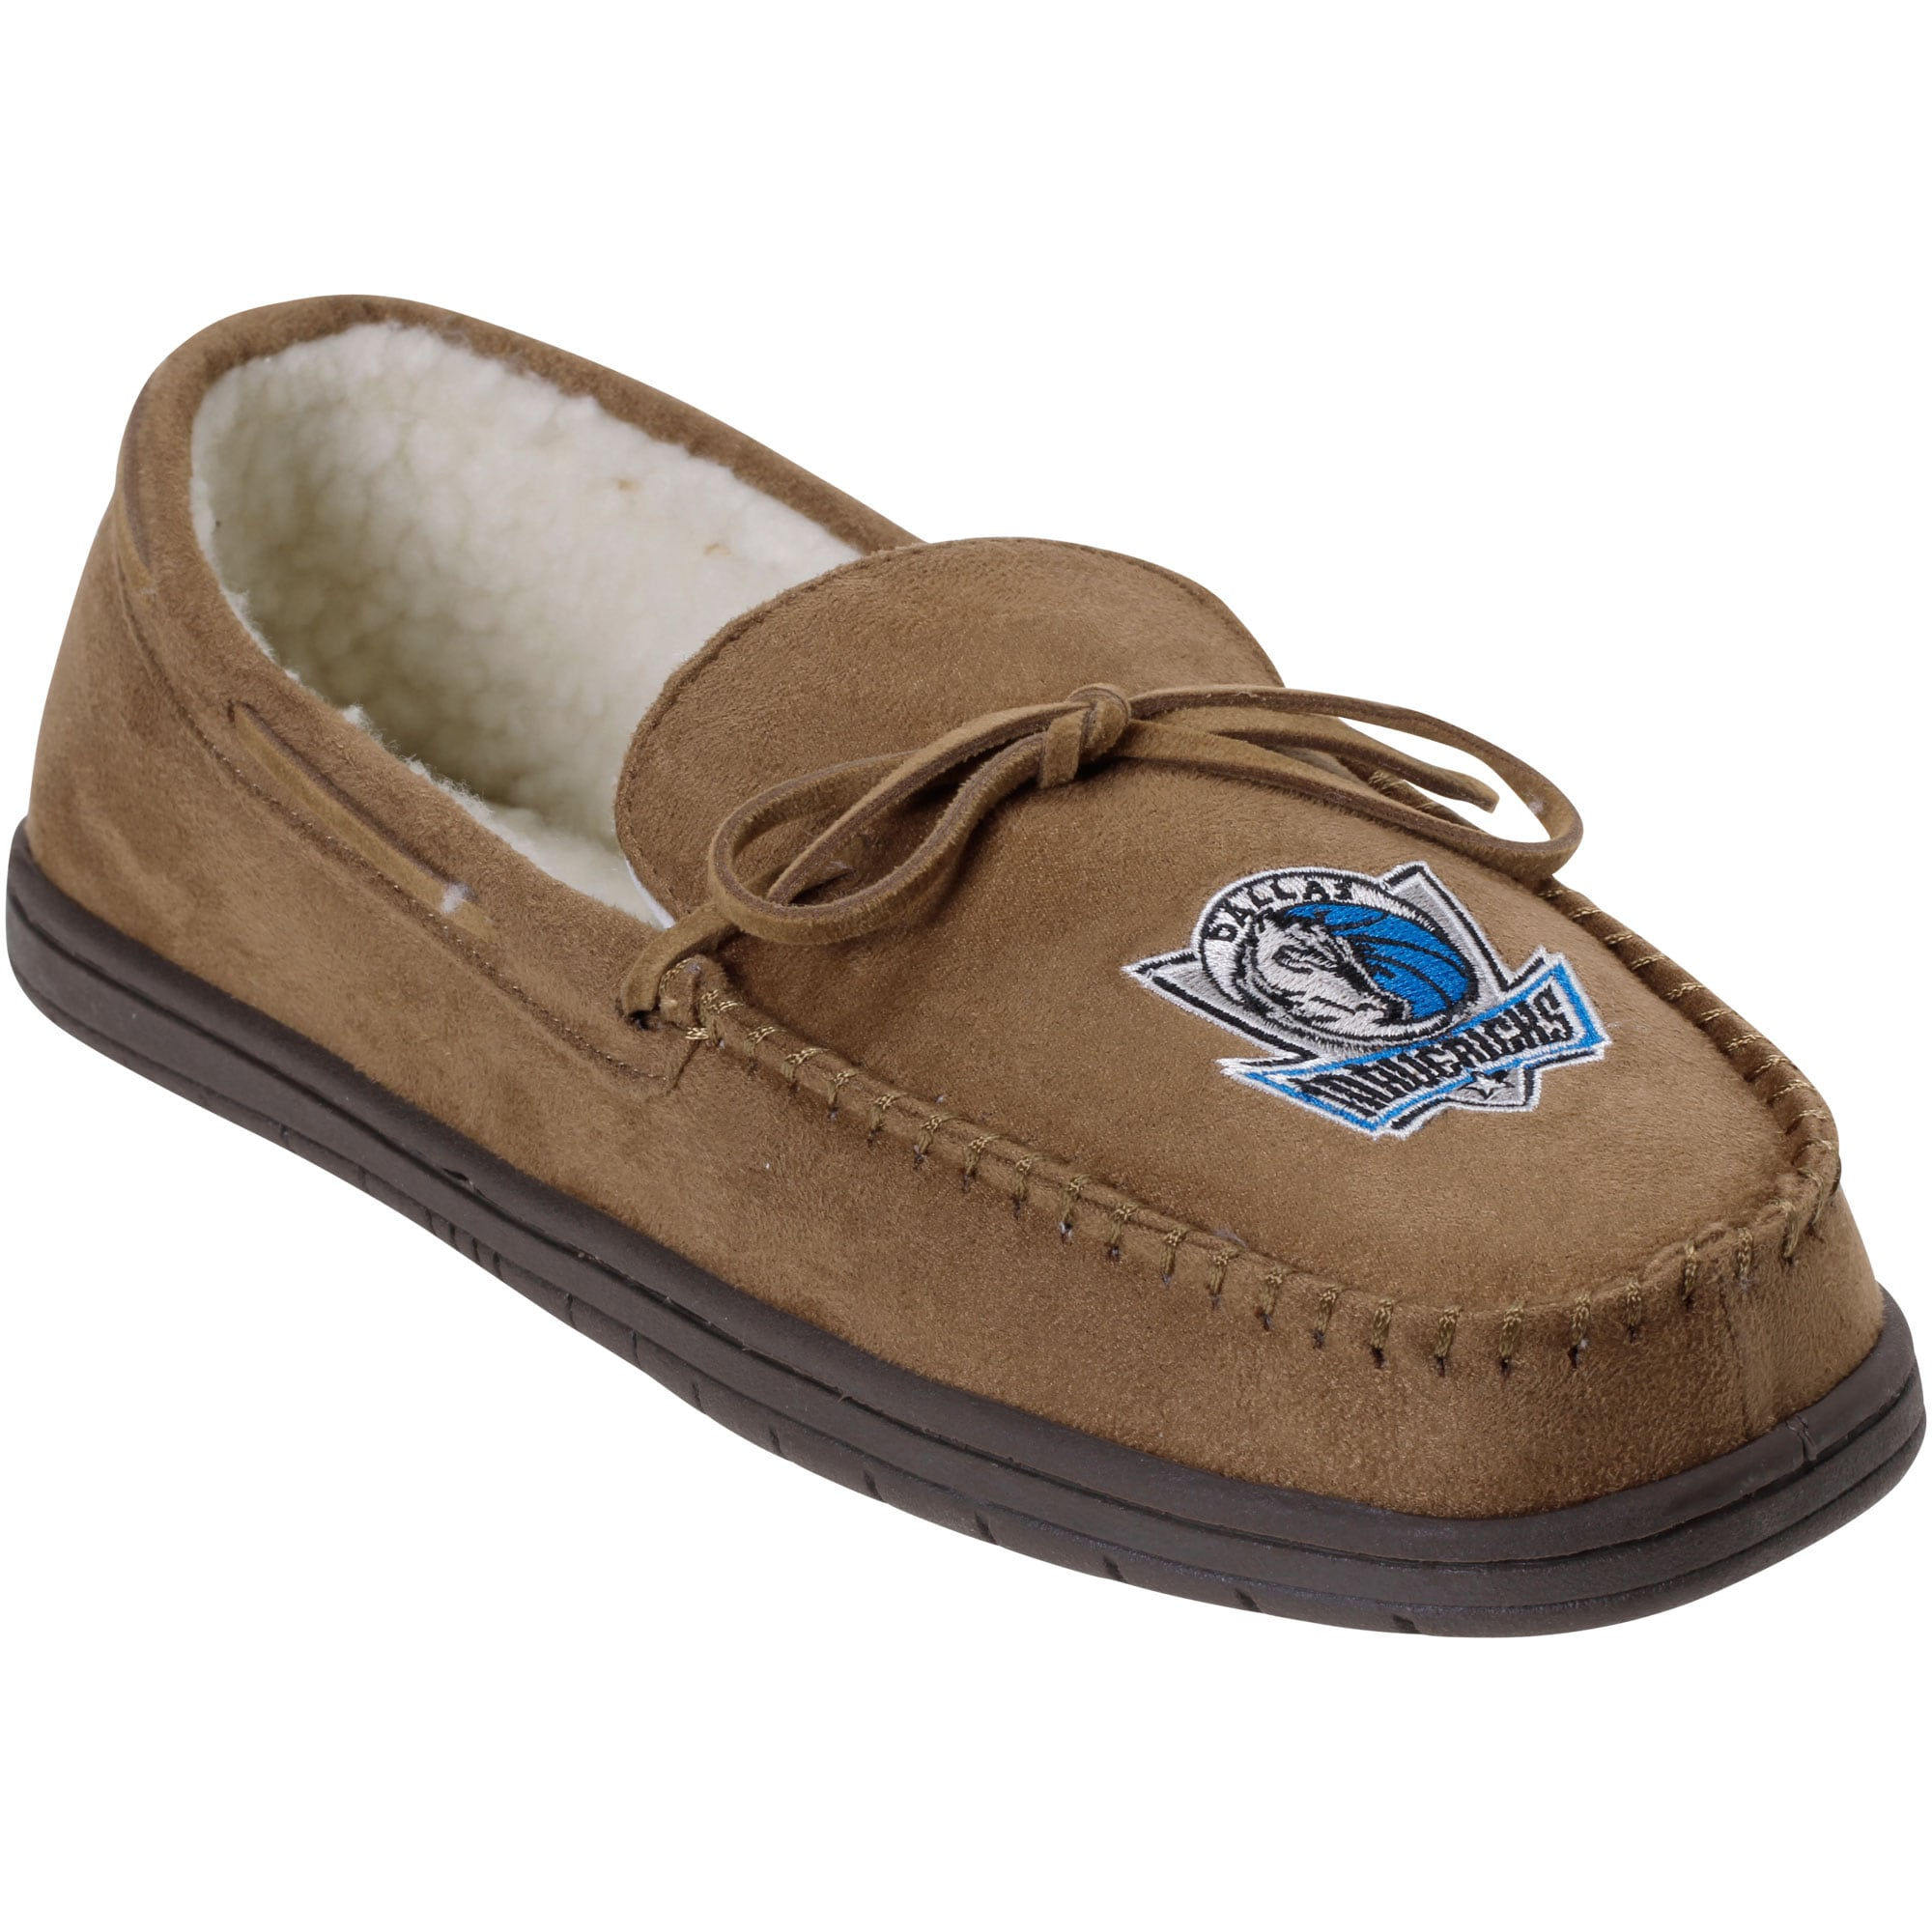 Dallas Mavericks Moccasin Slippers